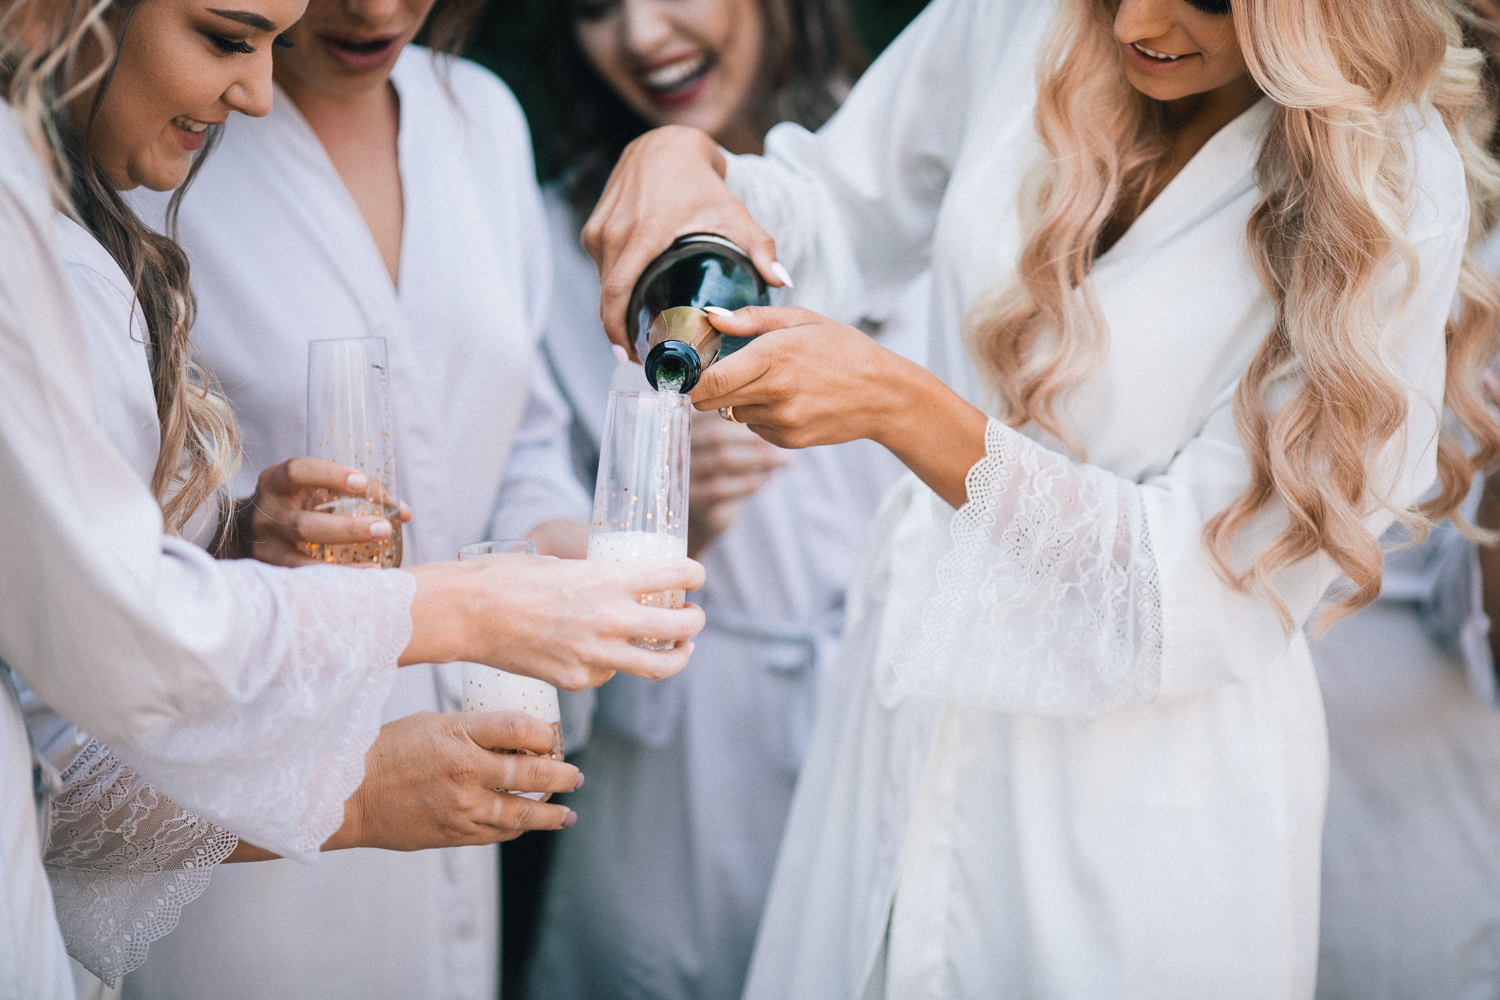 2018_08_ 112018.08.11 Cline Vinyard Wedding Blog Photos Edited For Web 0008.jpg